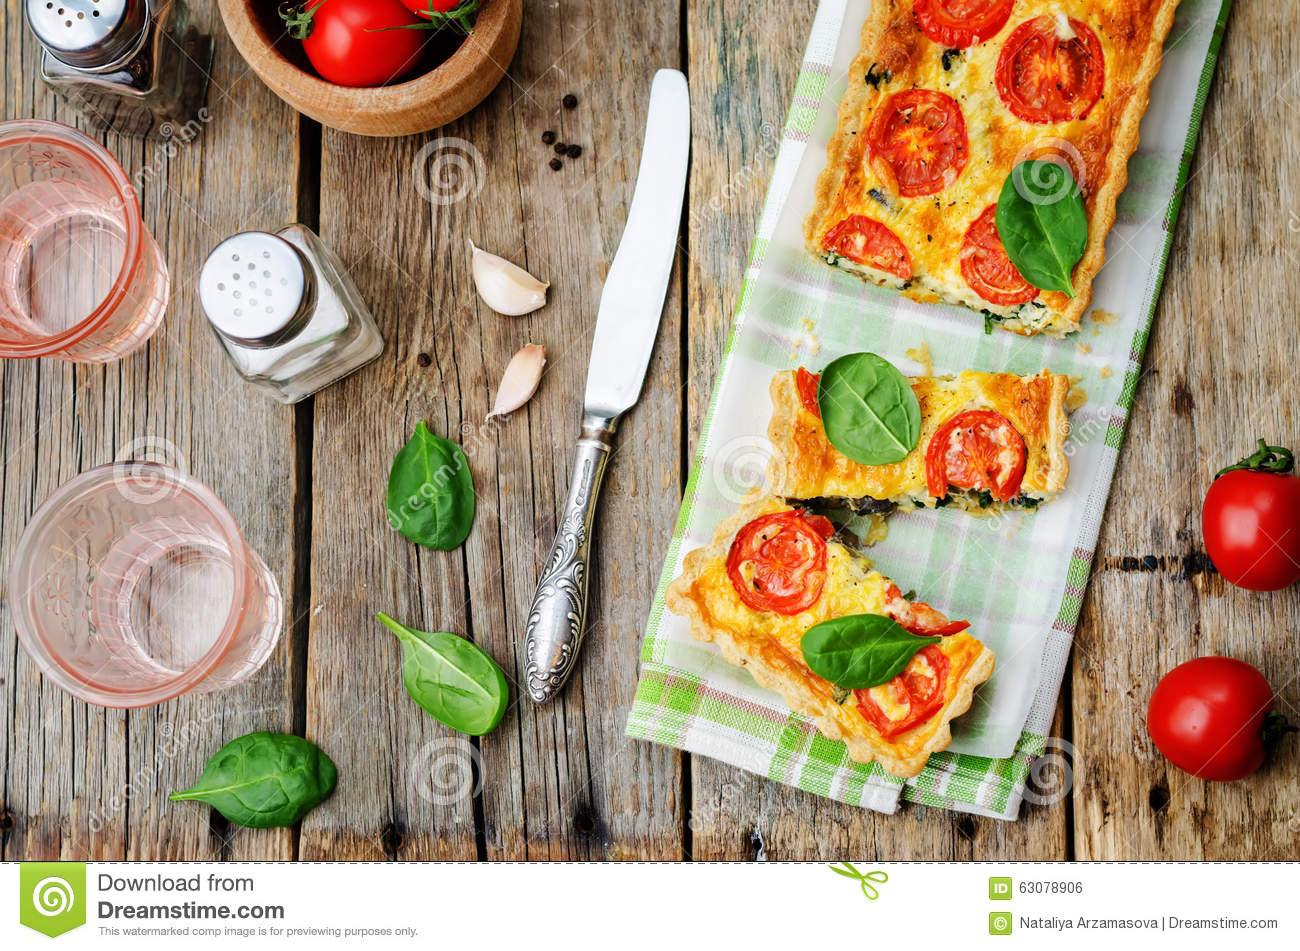 Download Épinards, Tomates, Quiche De Champignon Photo stock - Image du sain, pâtisserie: 63078906